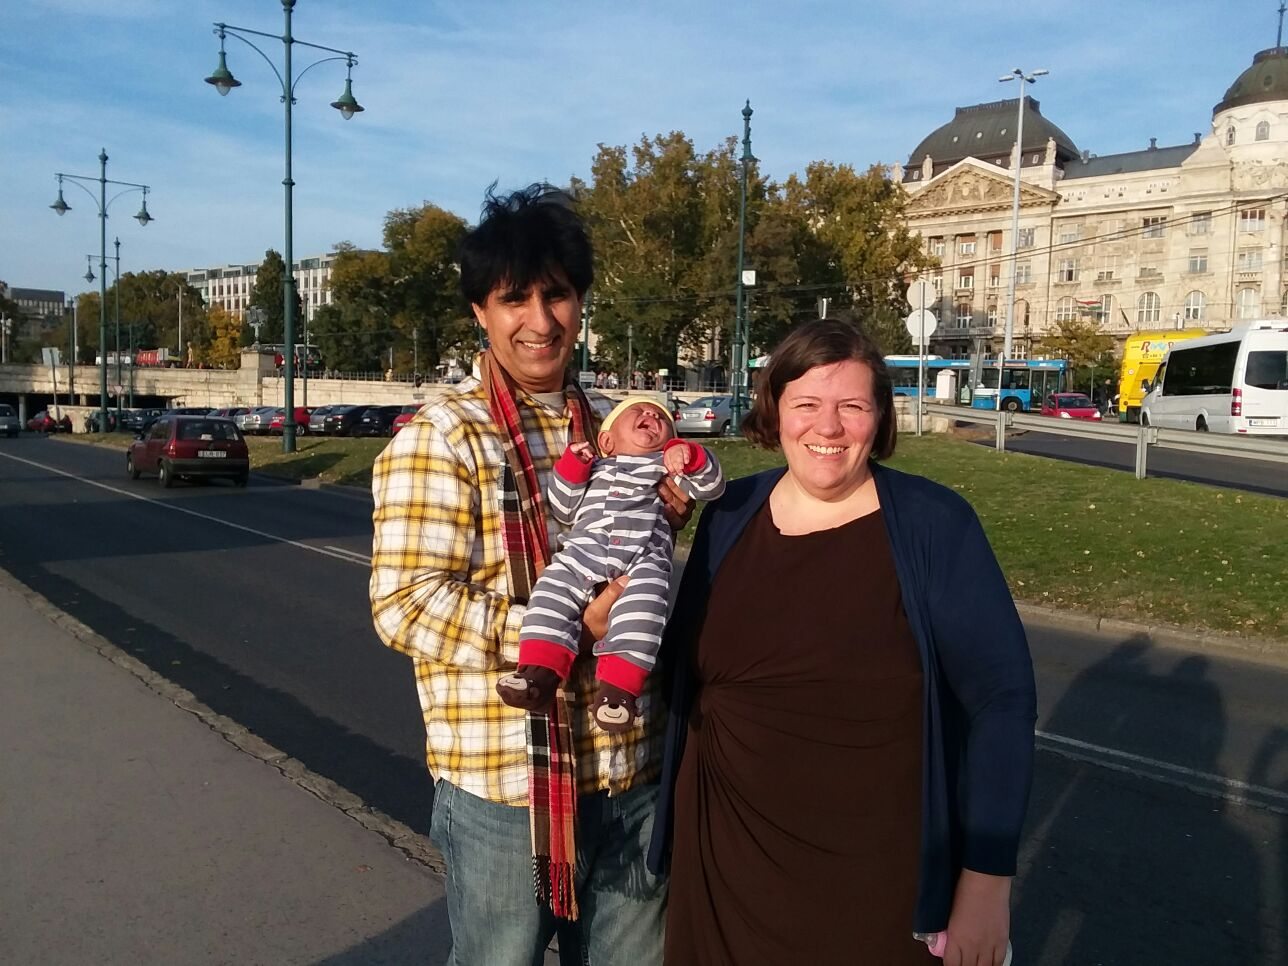 Naomi, Sana and their baby standing in front of a building in the sun in Budapest, the baby is crying and we are smiling.